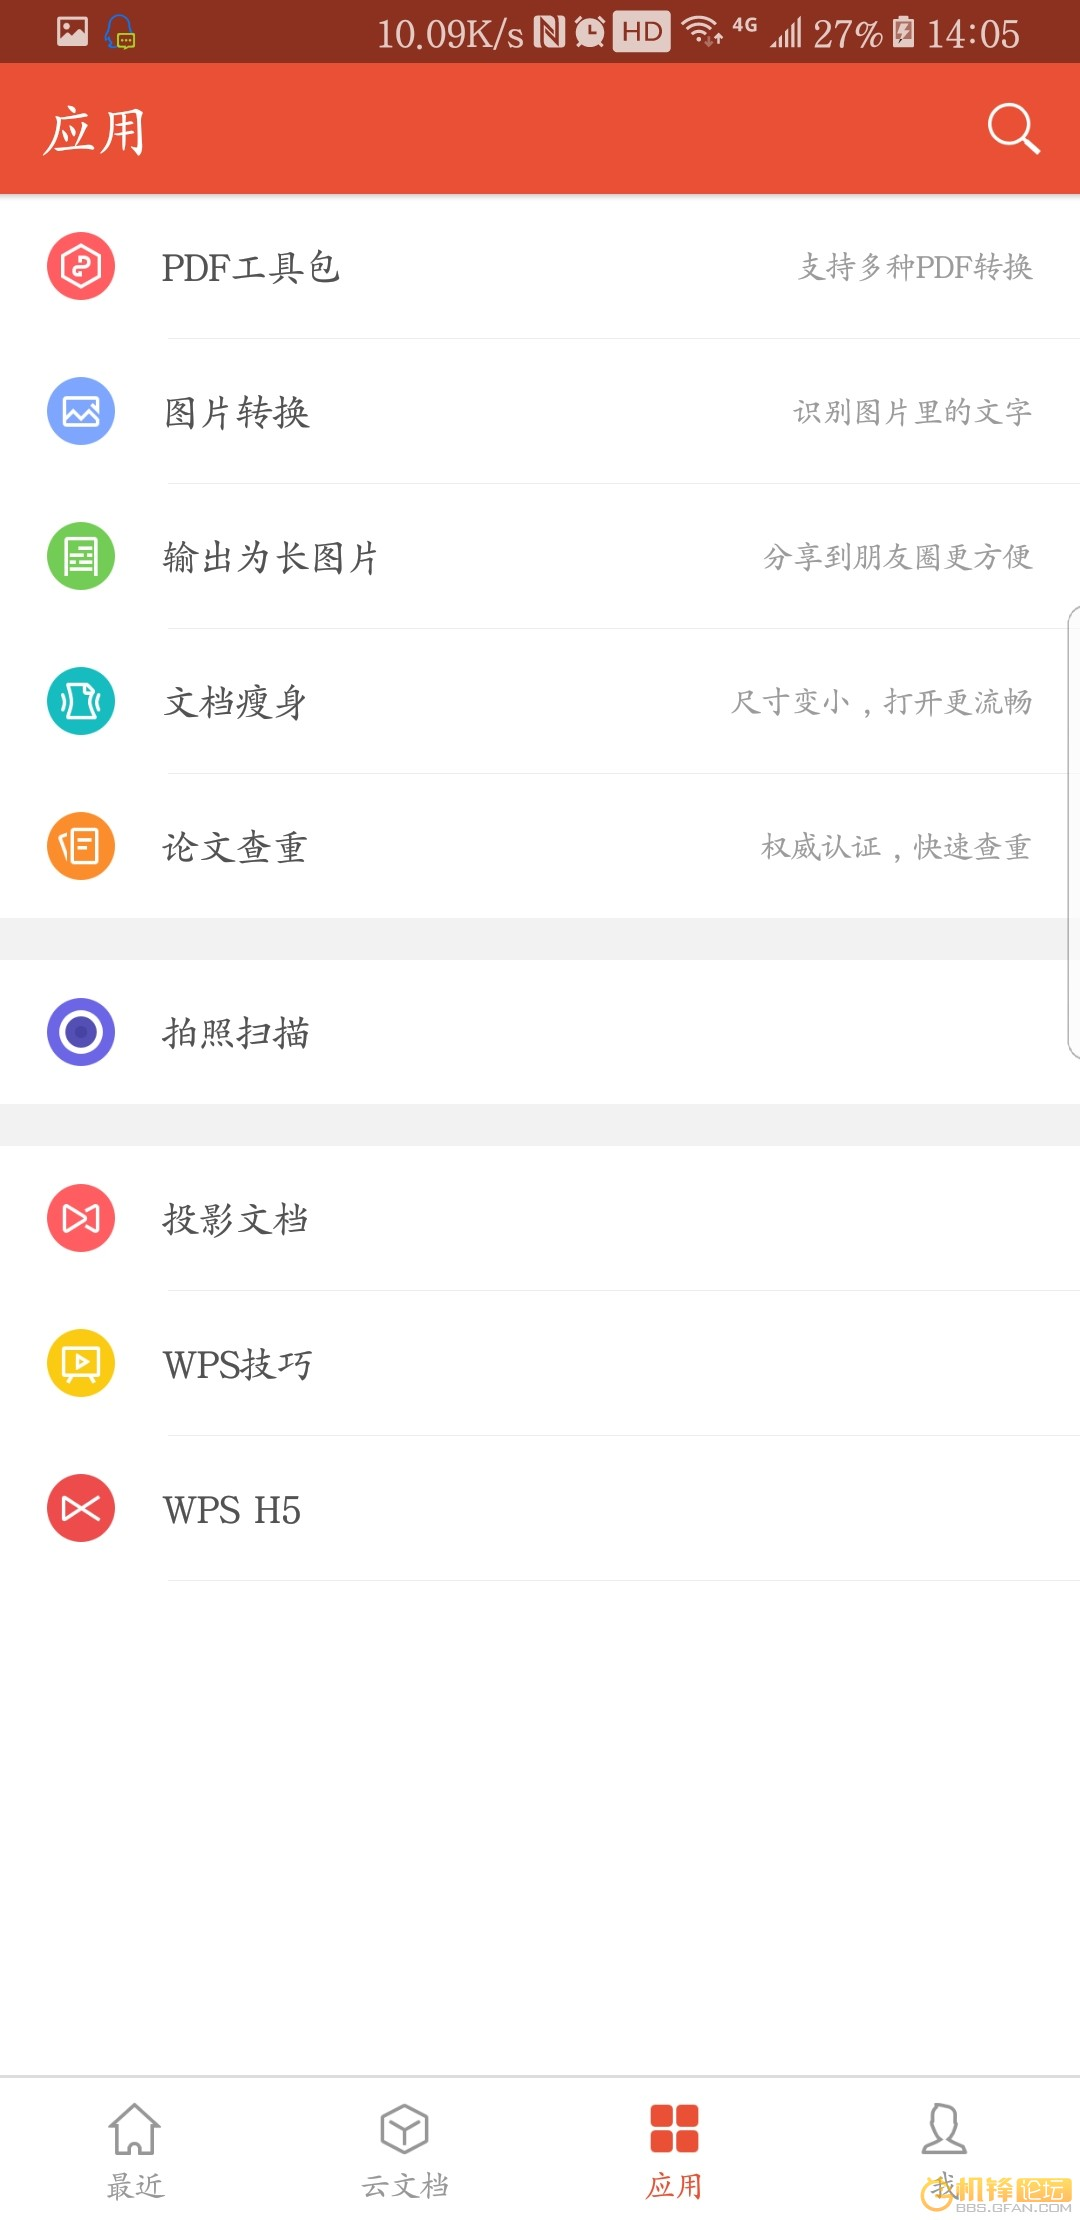 Screenshot_20180112-140533.jpg